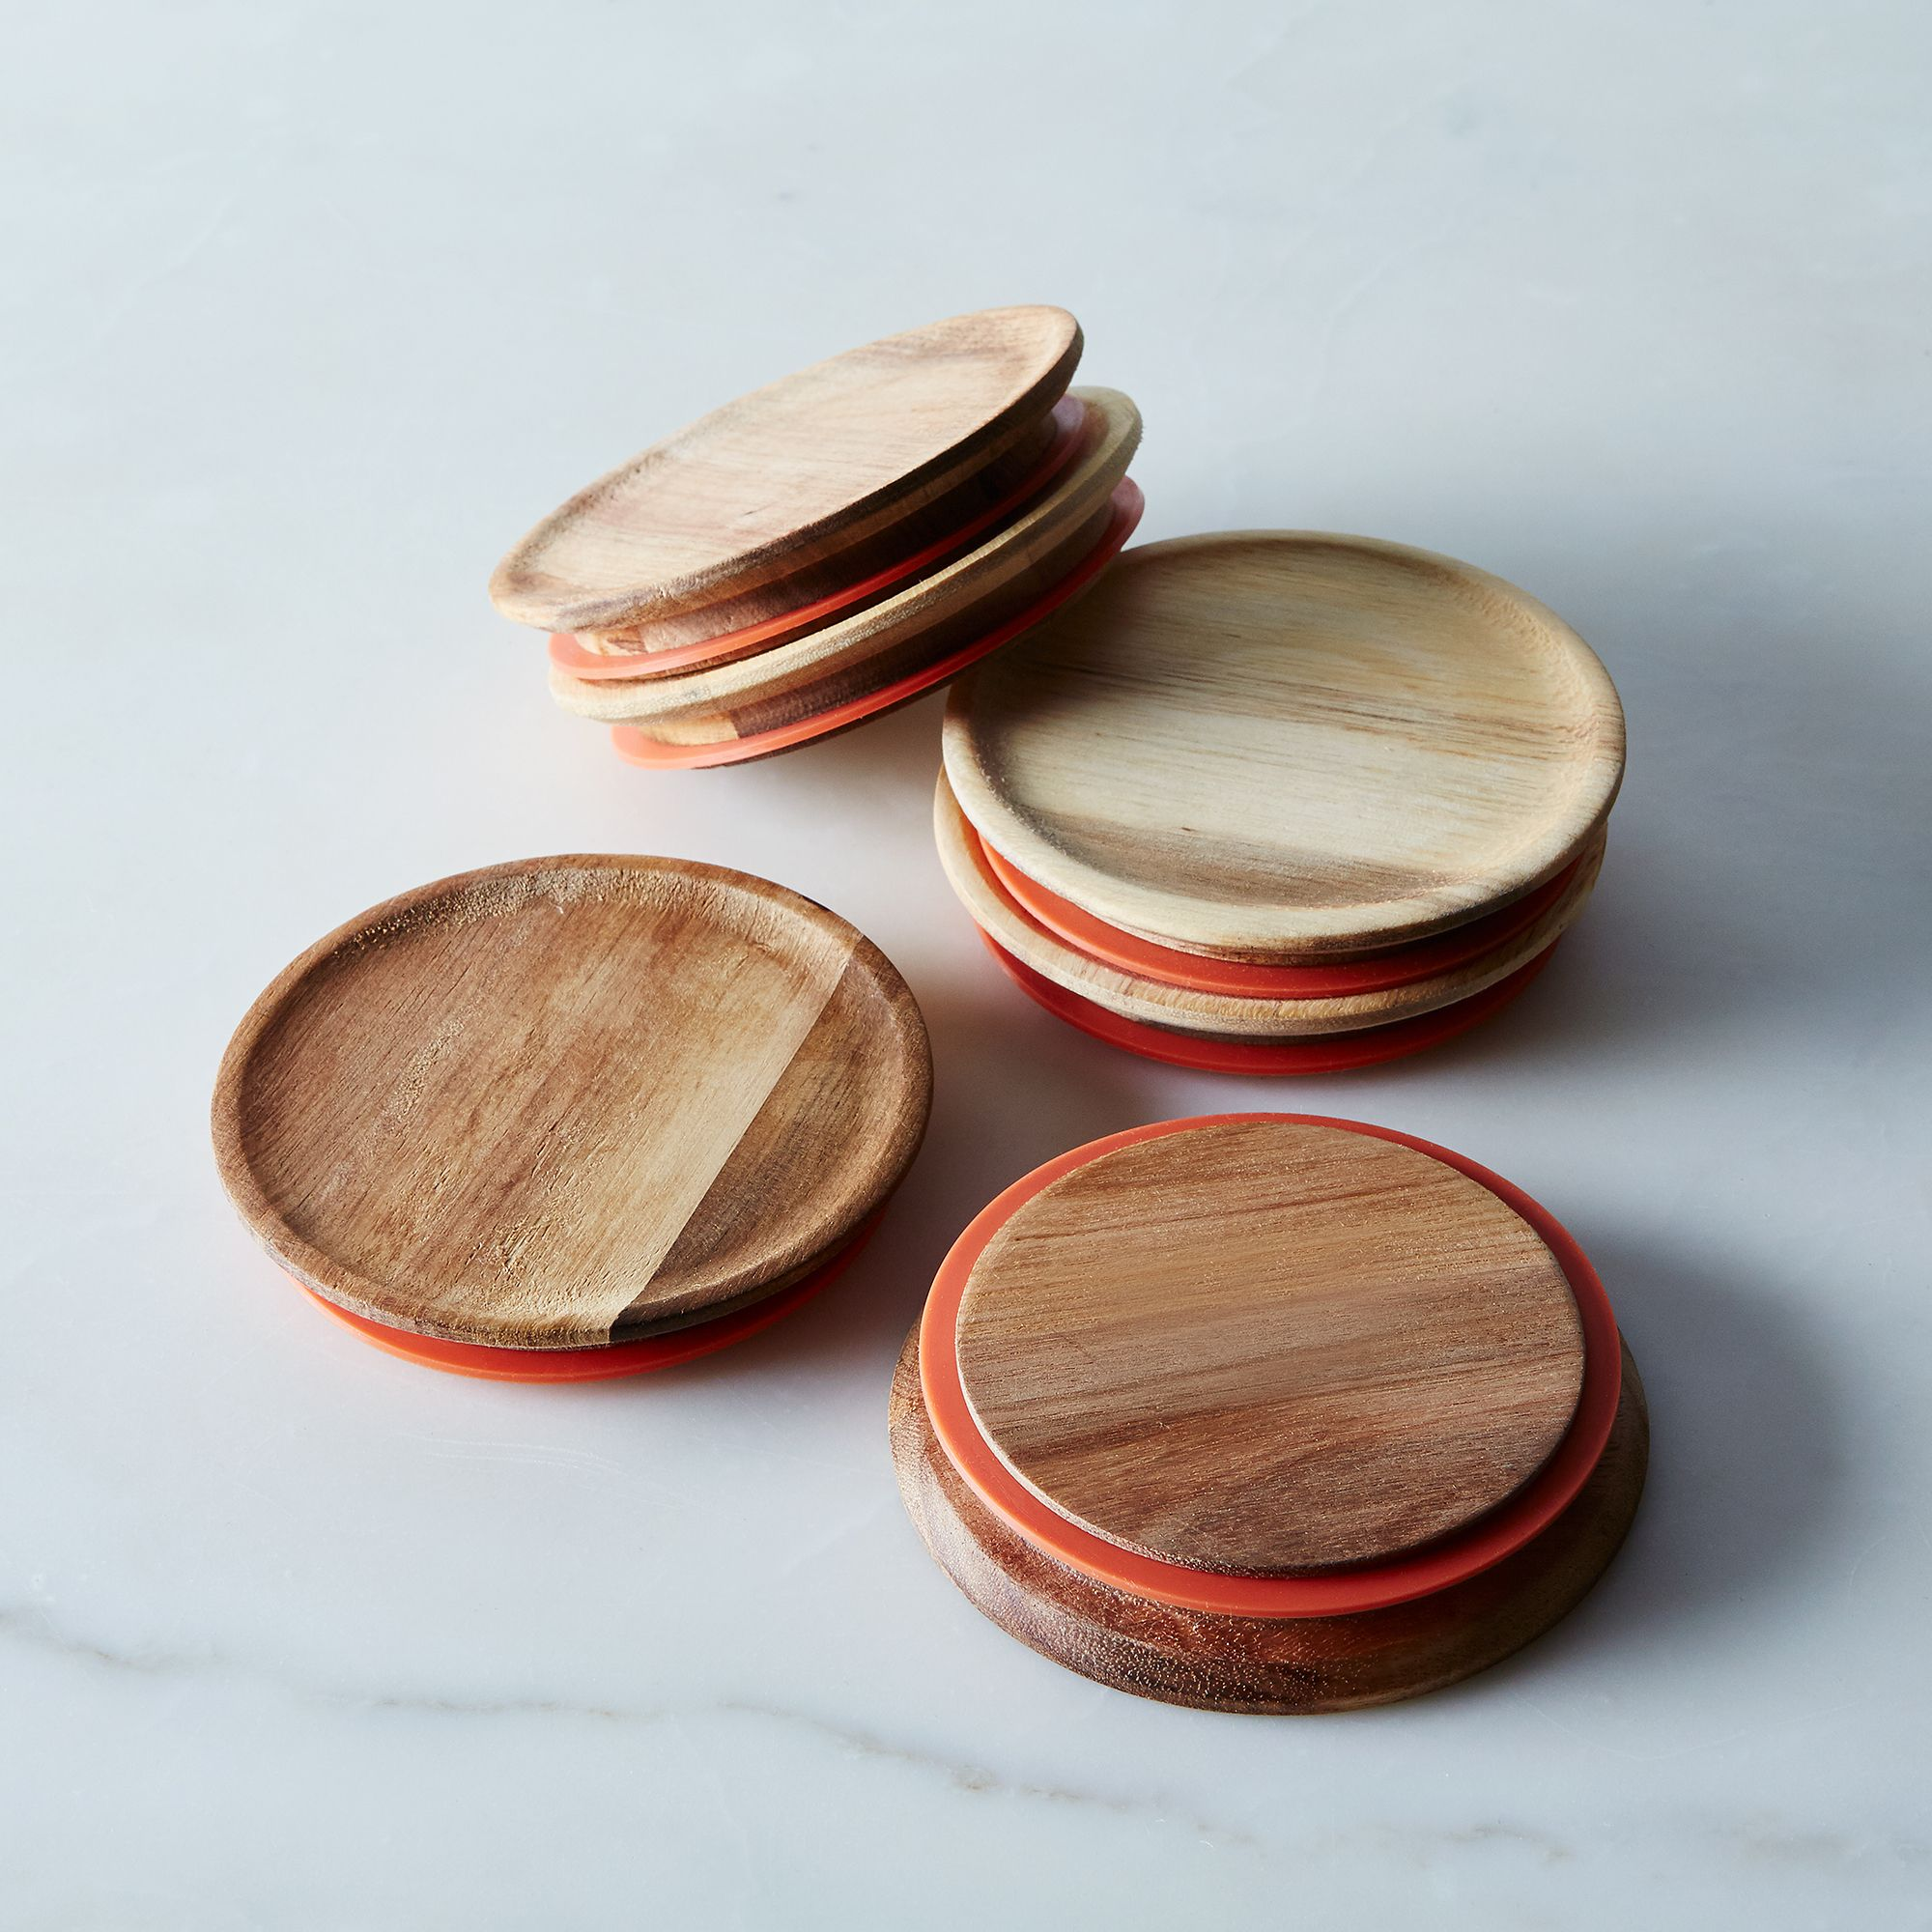 50c95875 01da 4595 99f9 725a02c53c5e  2016 0318 mountain feed tulip jars wood lid set silo rocky luten 2039